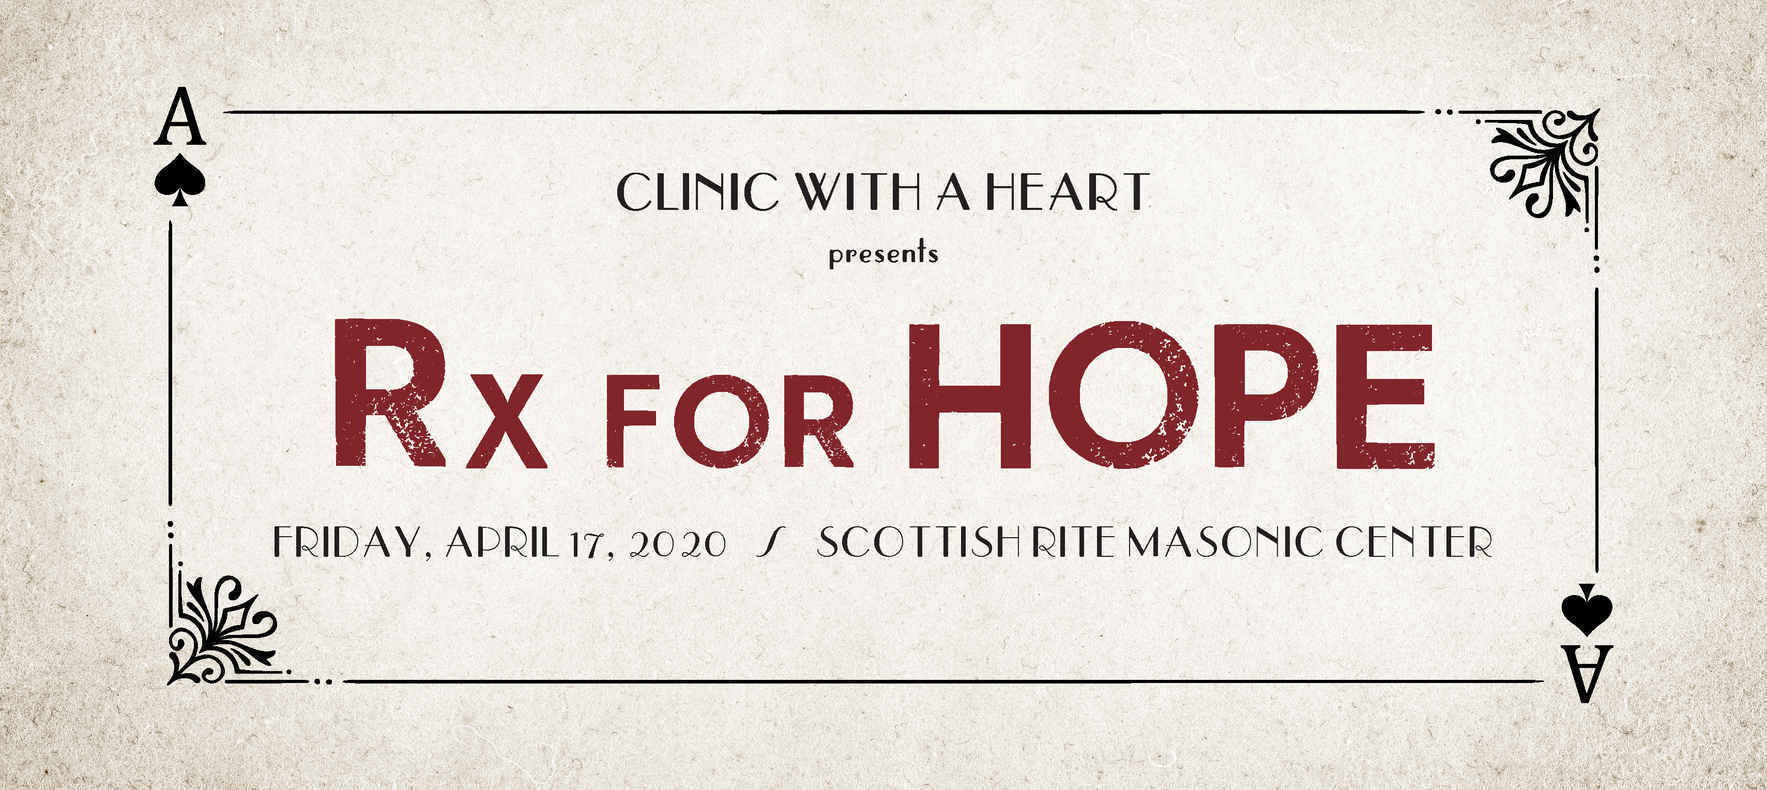 Rx for Hope image